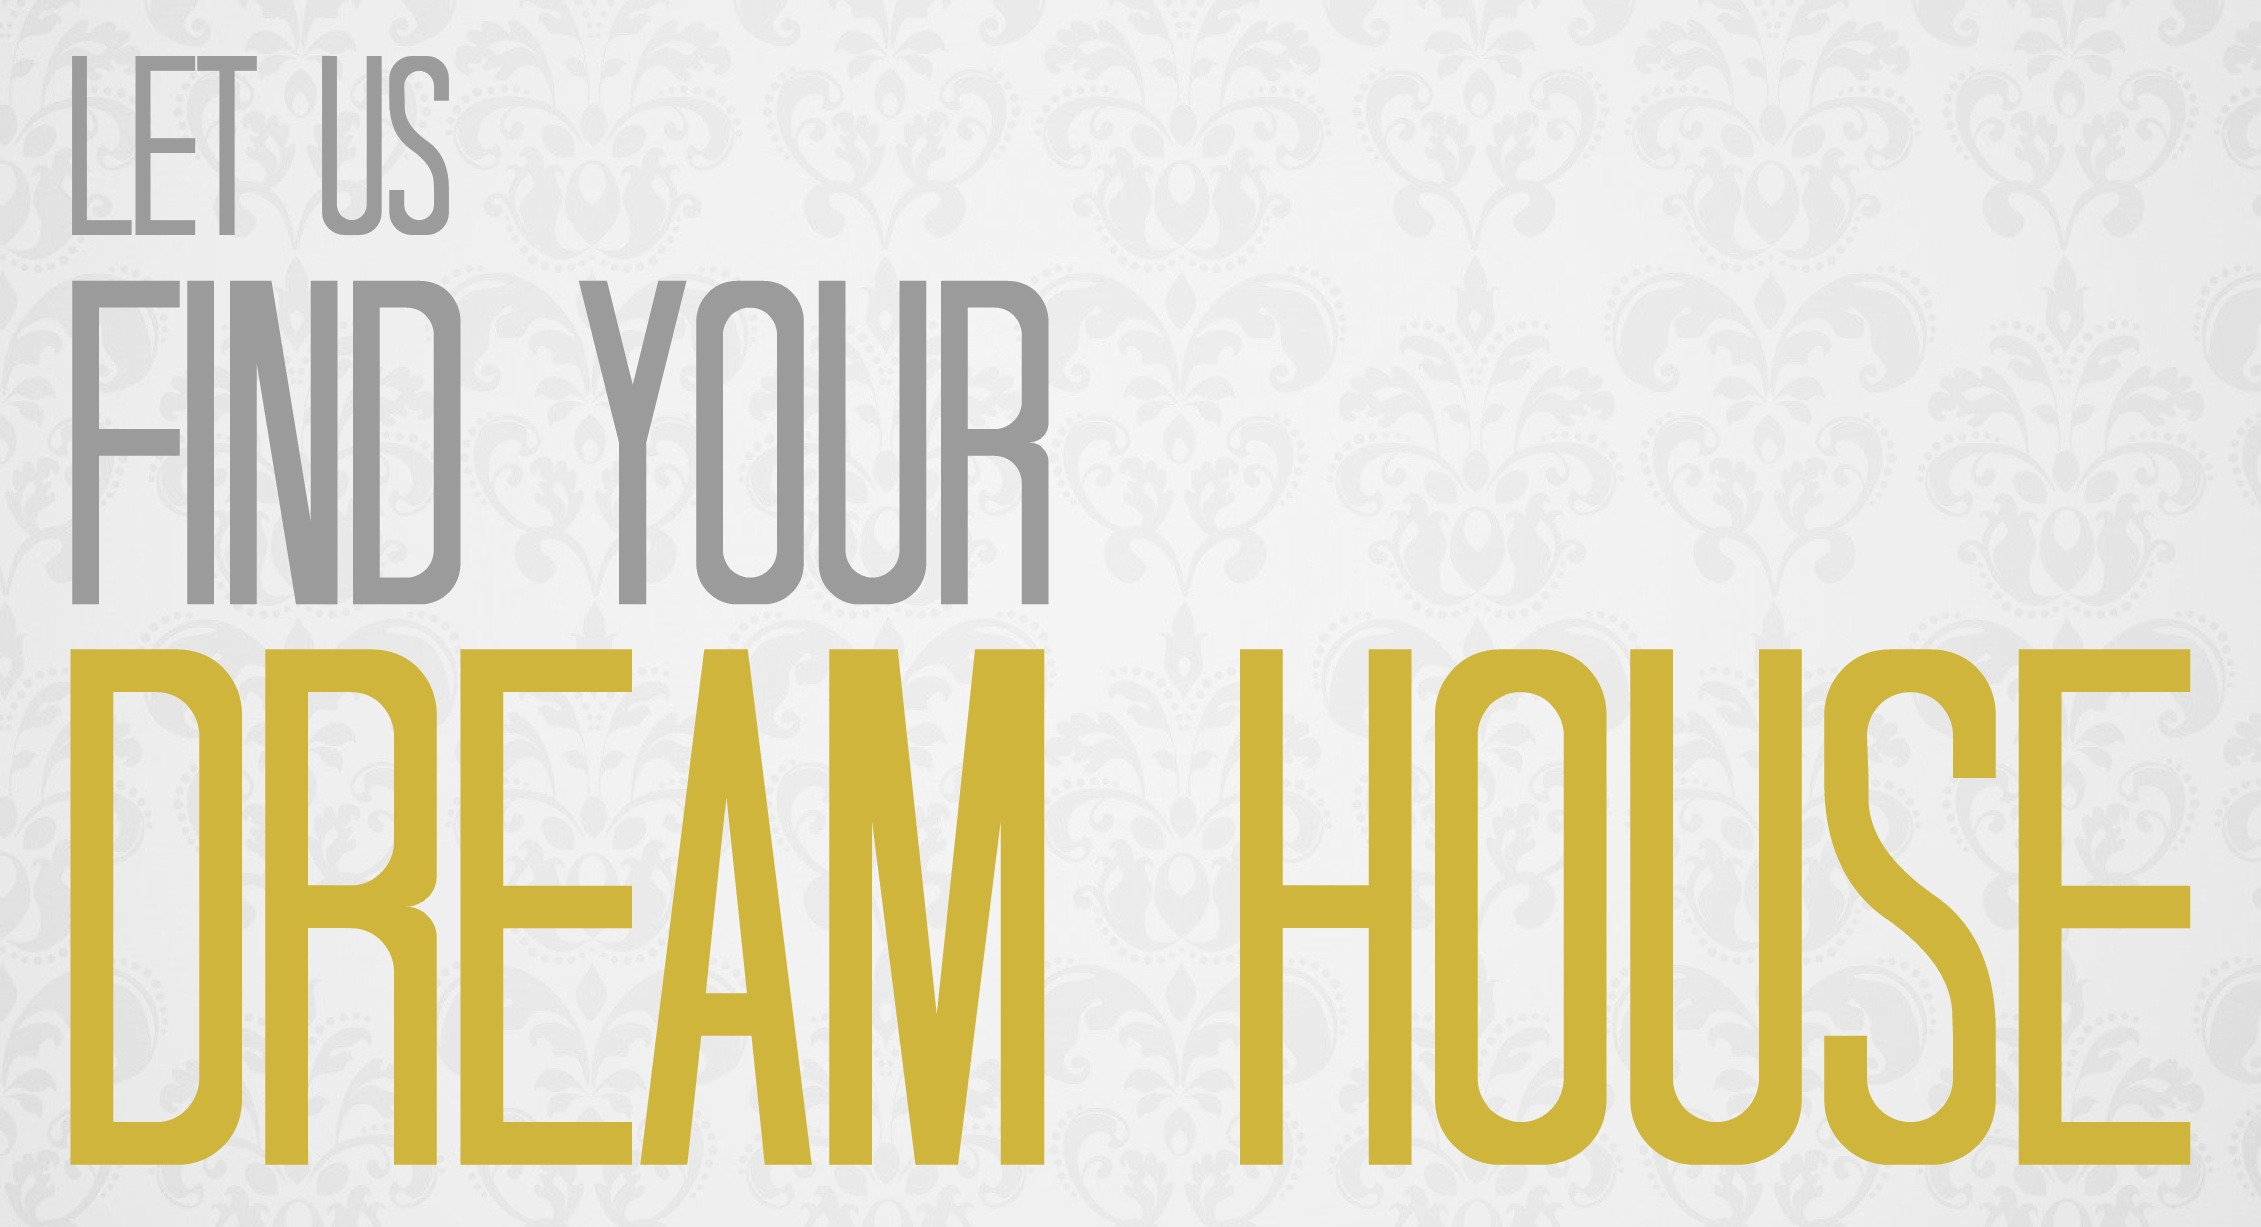 LET US FIND YOUR DREAM HOUSE